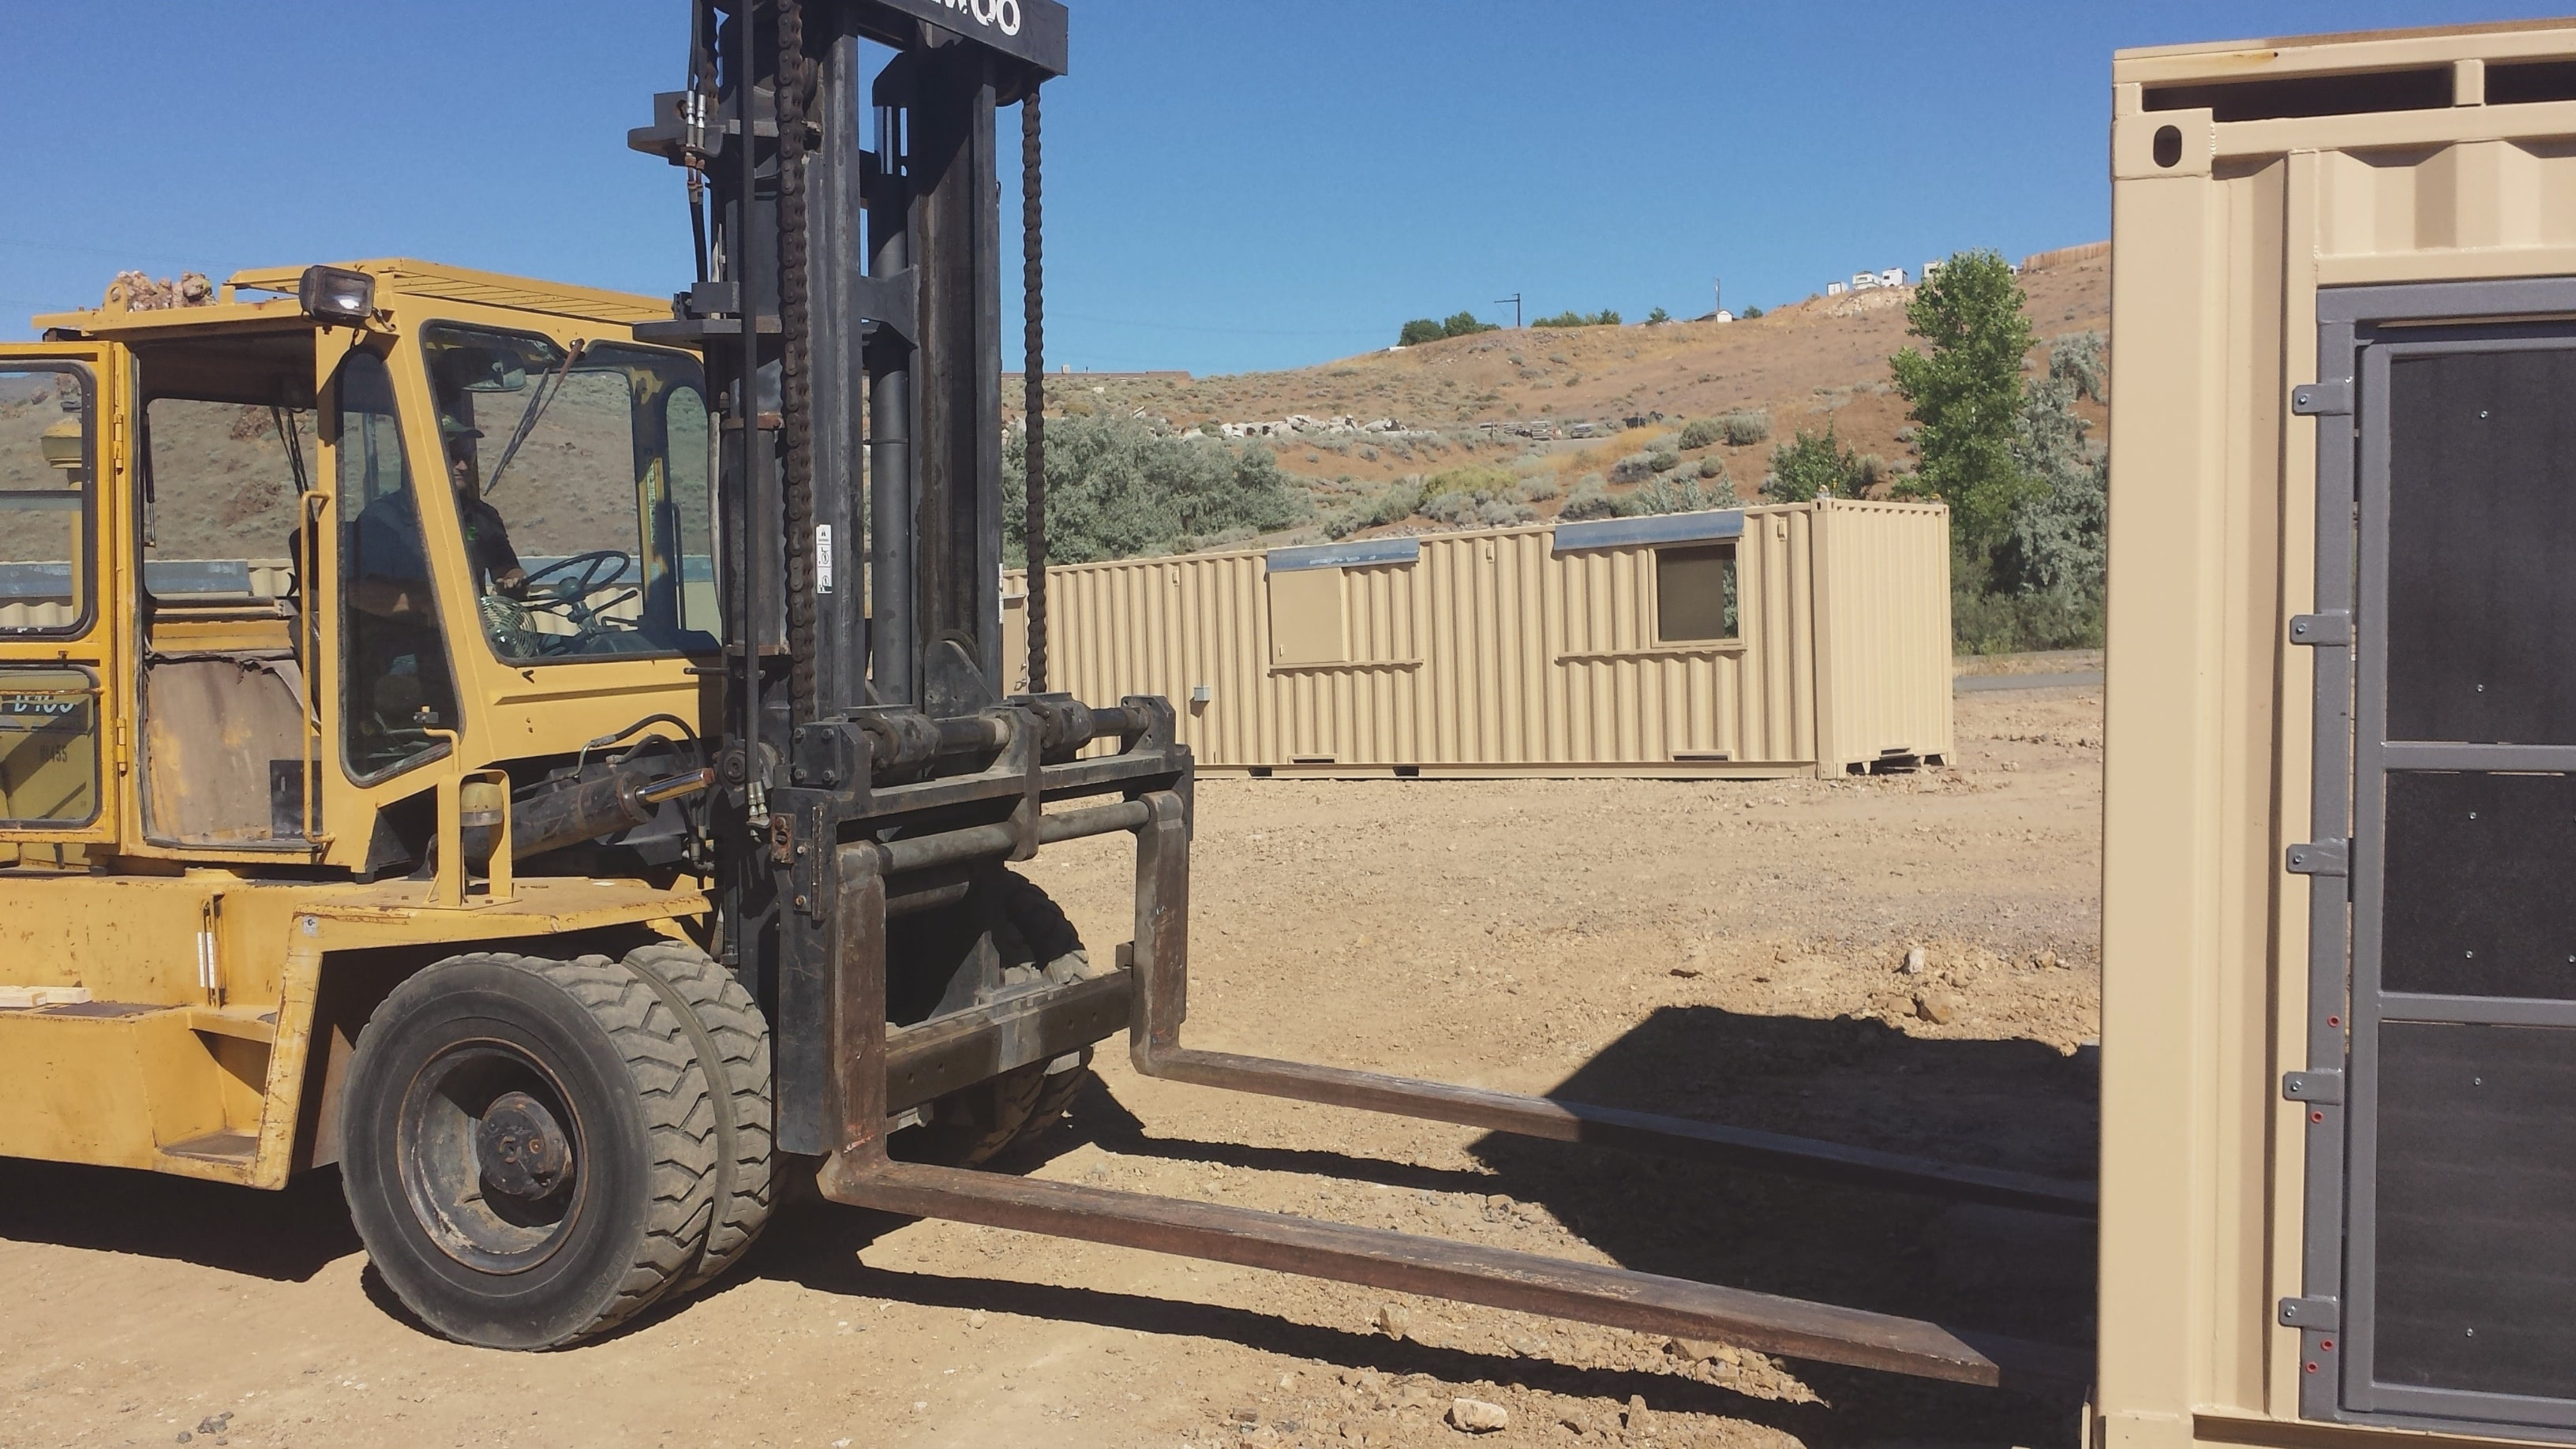 Forklift pockets make installing shipping container modules fast and easy.